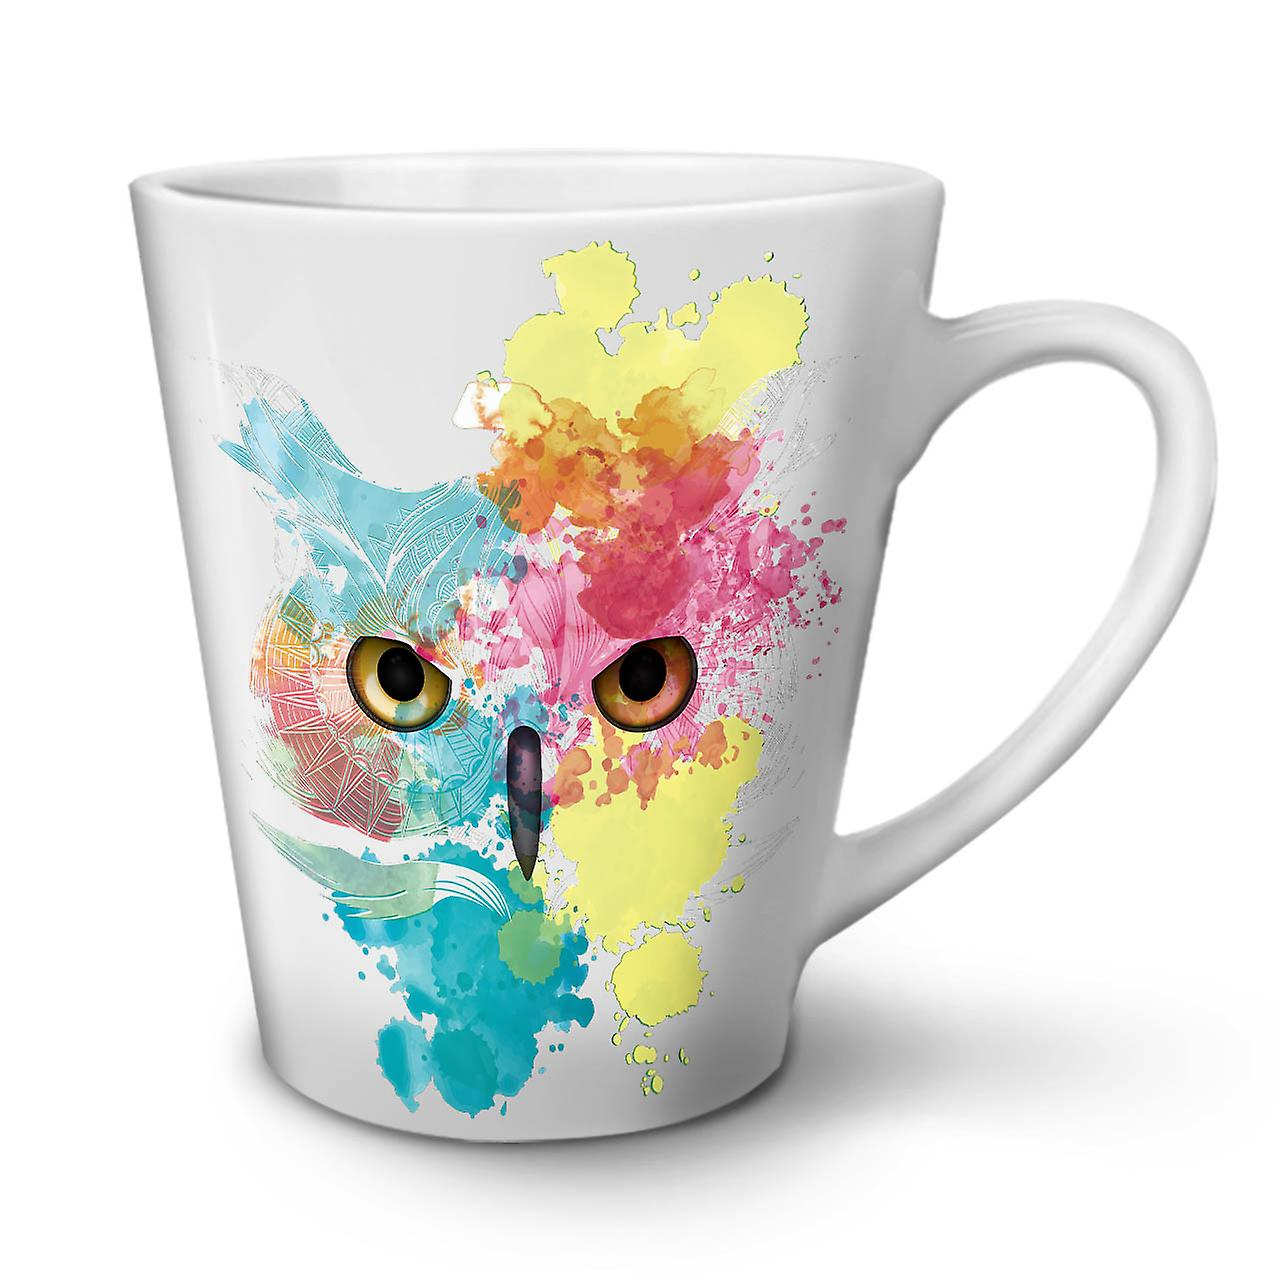 Owl Ceramic Mug Stylish Owl Bird New White Tea Coffee Ceramic Latte Mug 12